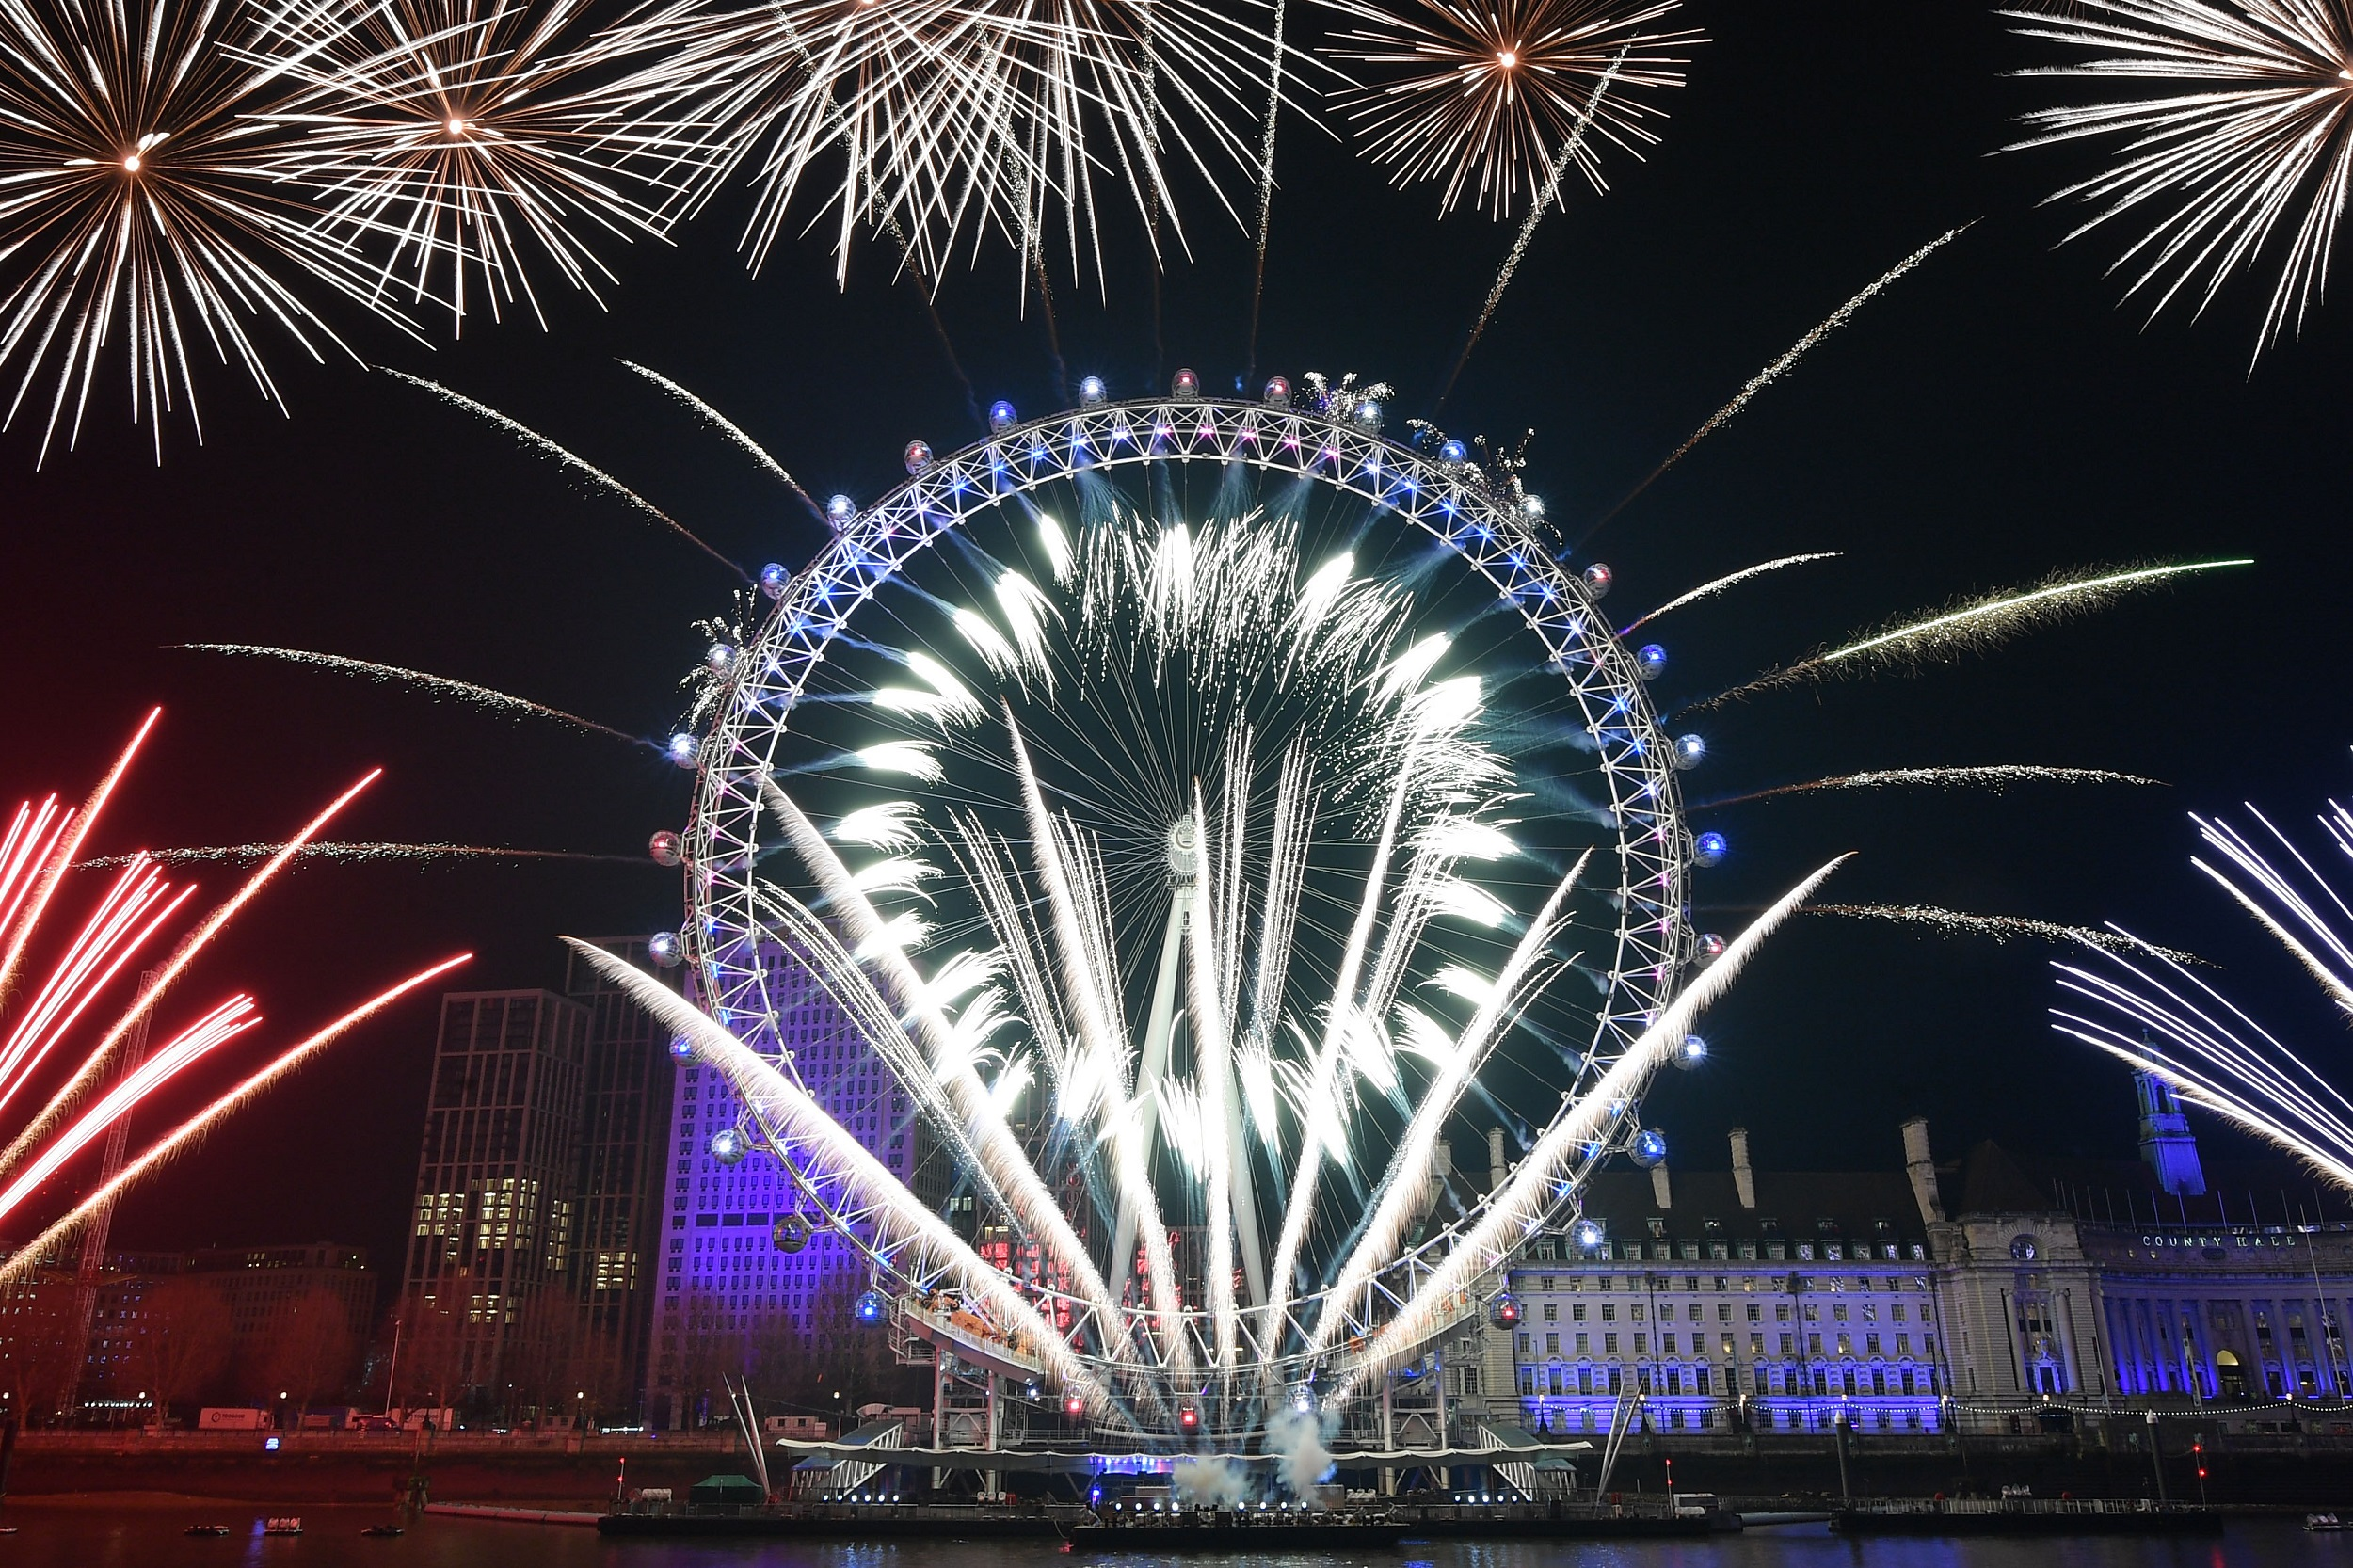 London New Year's Eve fireworks cancelled due to coronavirus pandemic